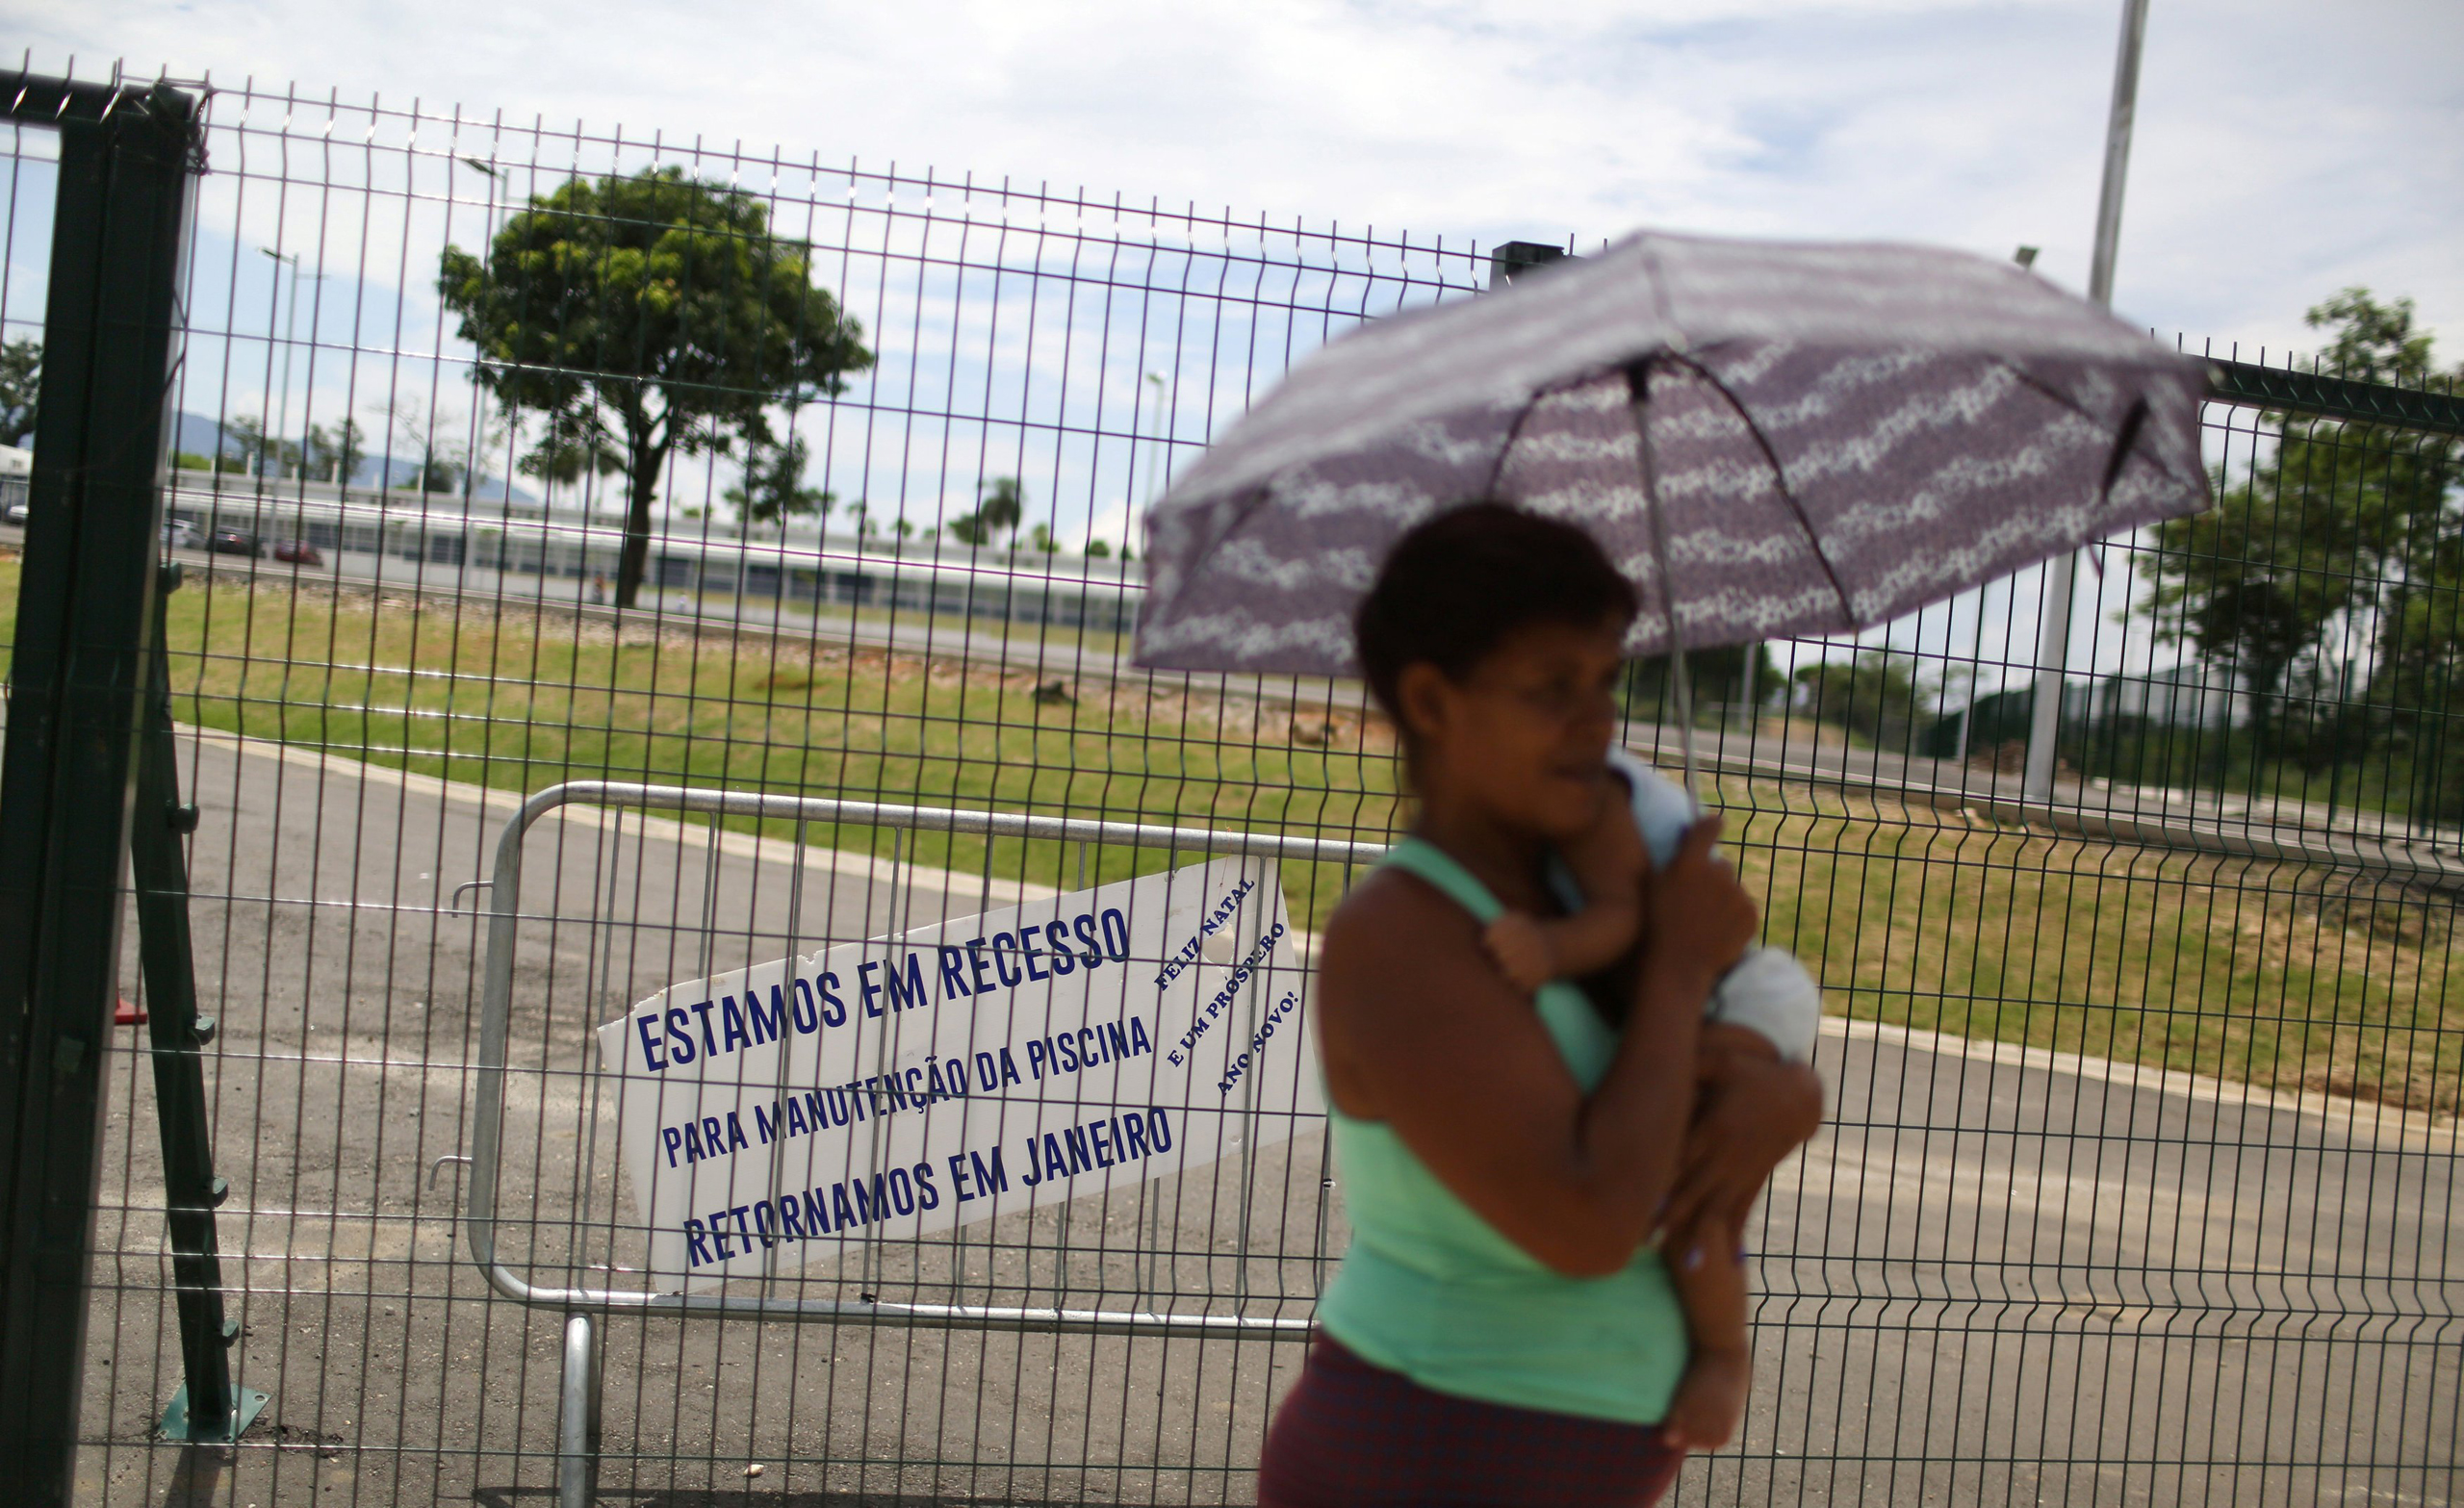 A woman carries a baby in front of the Deodoro Sports Complex, which was used for the Rio 2016 Olympic Games, in Rio de Janeiro, Brazil, on Feb. 7, 2017. The sign reads:   We are in recess for maintenance of the pool, we will return in January. Merry Christmas and Happy new year .